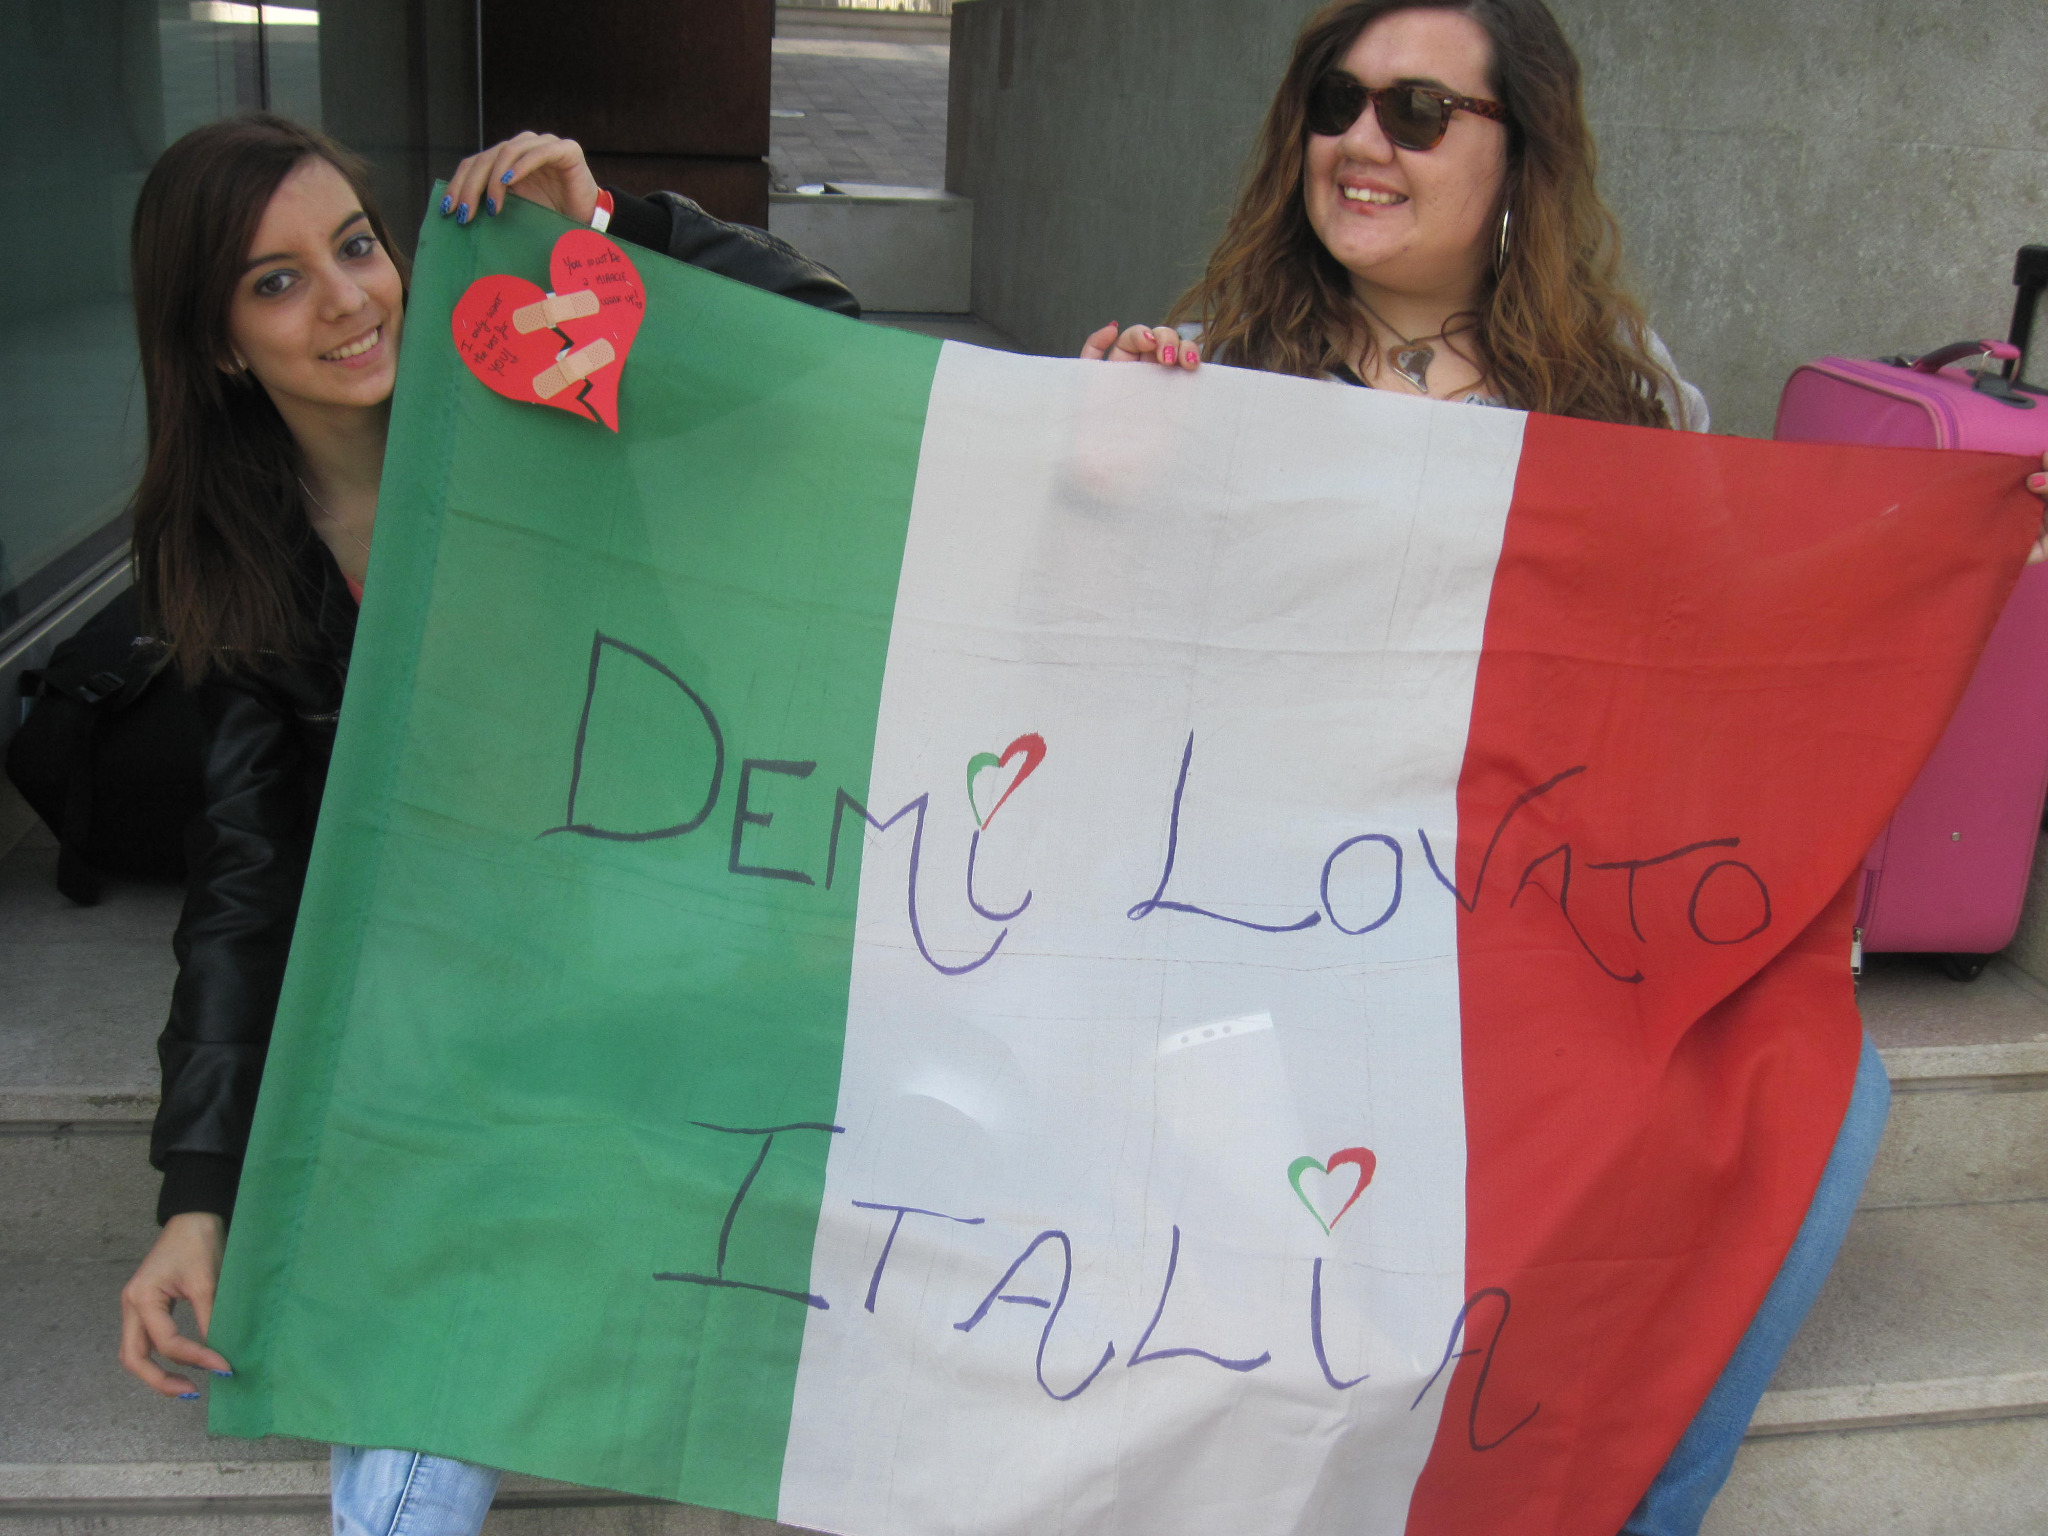 RT @DemiLovato_IT: We gave this Italian flag to @ddlovato :) http://t.co/Oh7sTI25